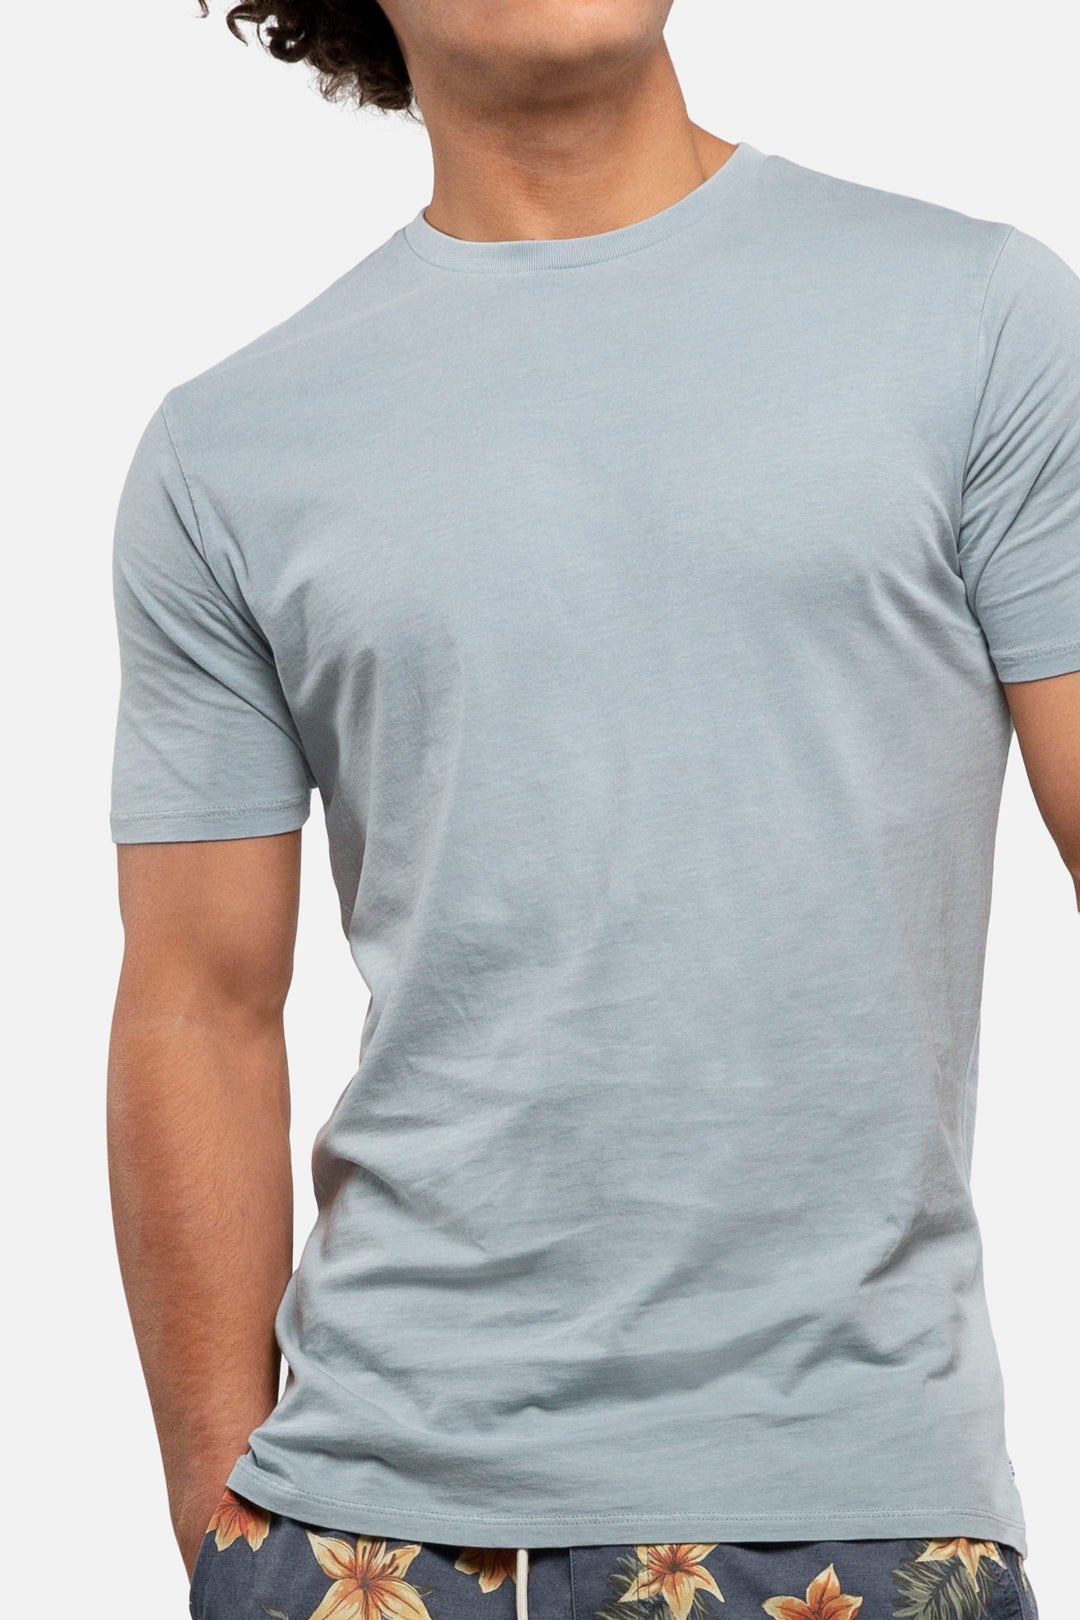 The Basic Classic Tee - Pigment Dyed Faded Blue